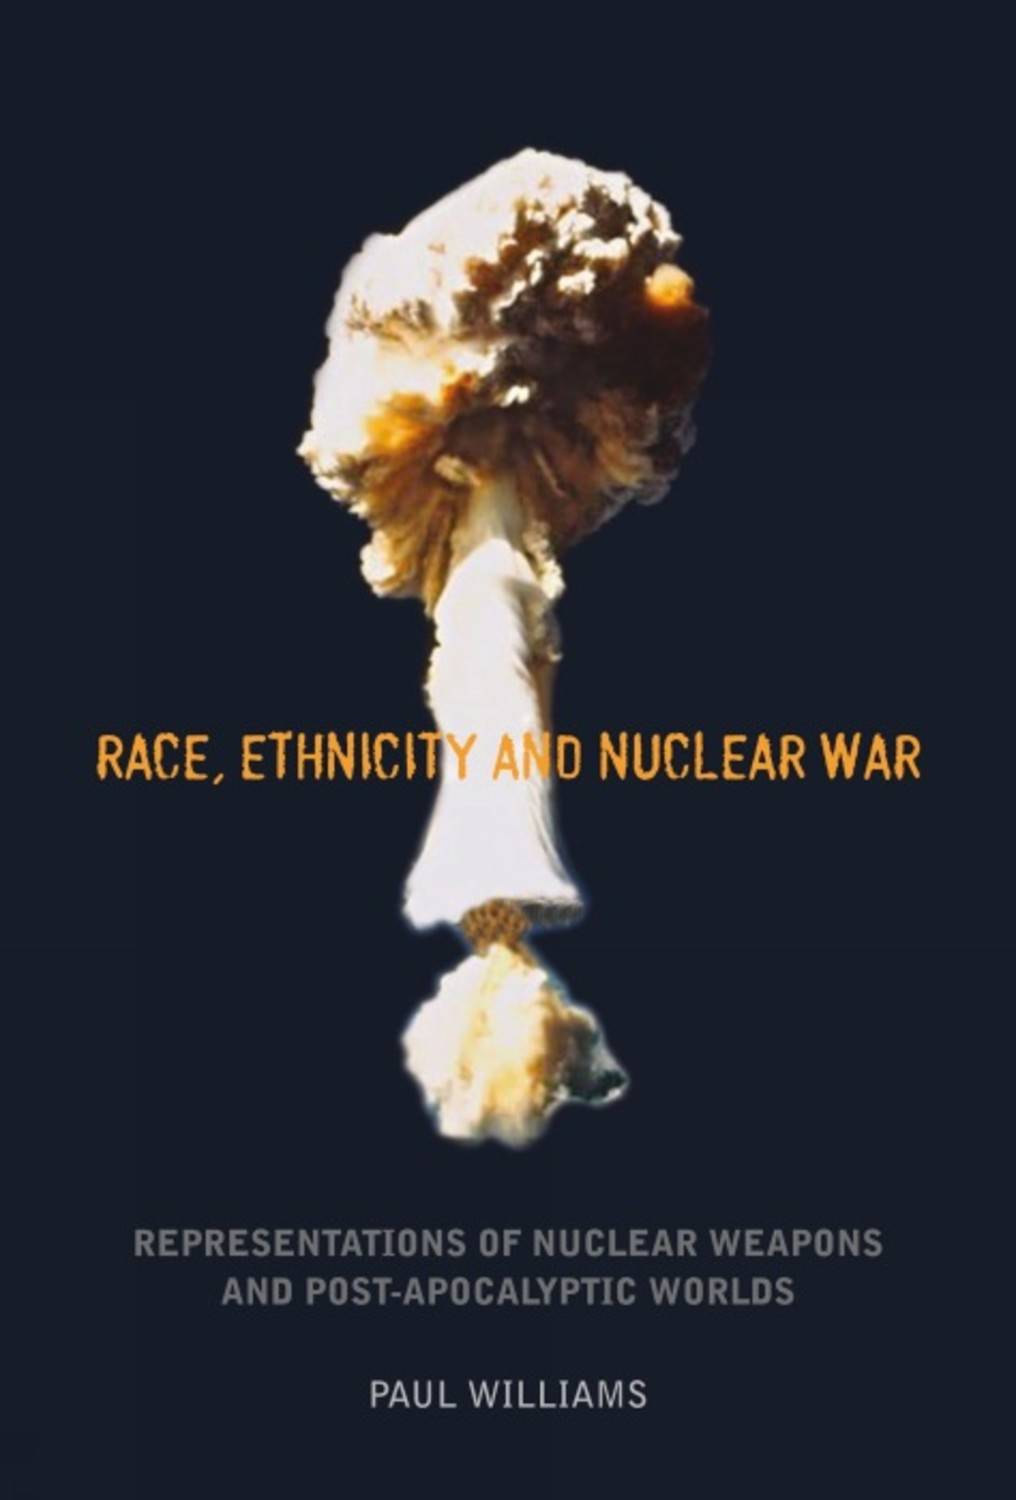 Race, Ethnicity and Nuclear War